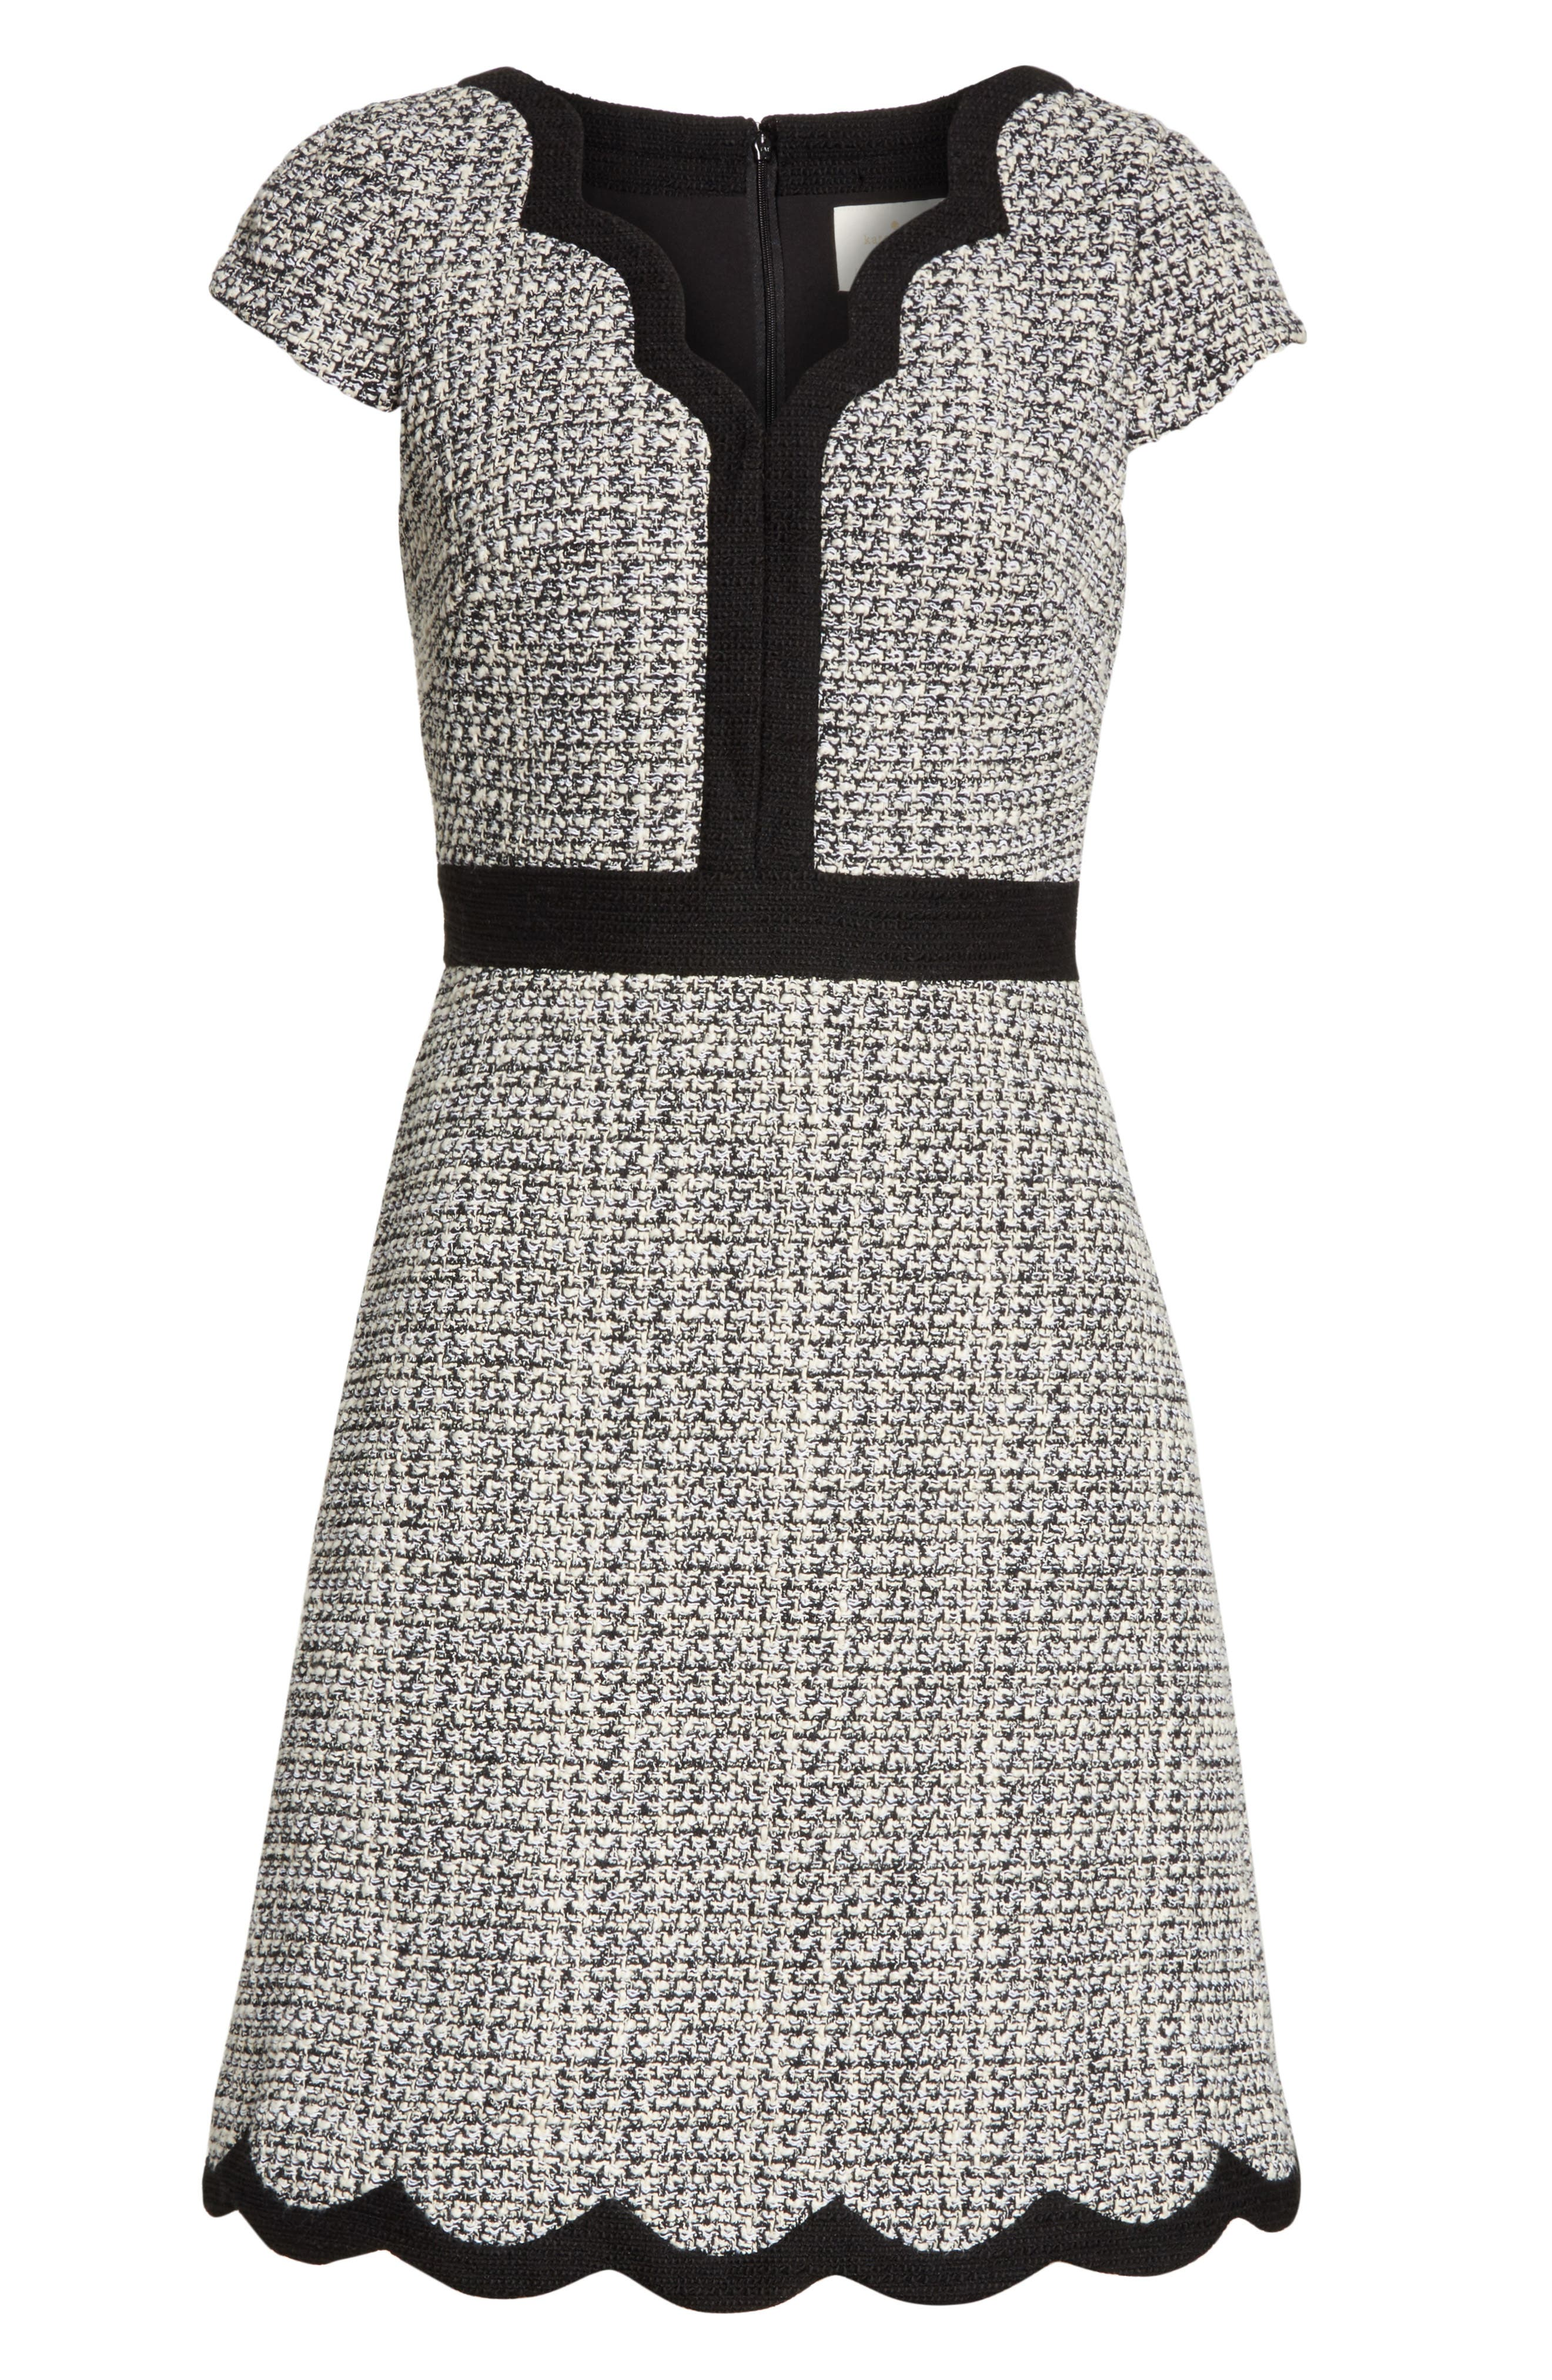 scallop tweed dress,                             Alternate thumbnail 6, color,                             Black/ Cream